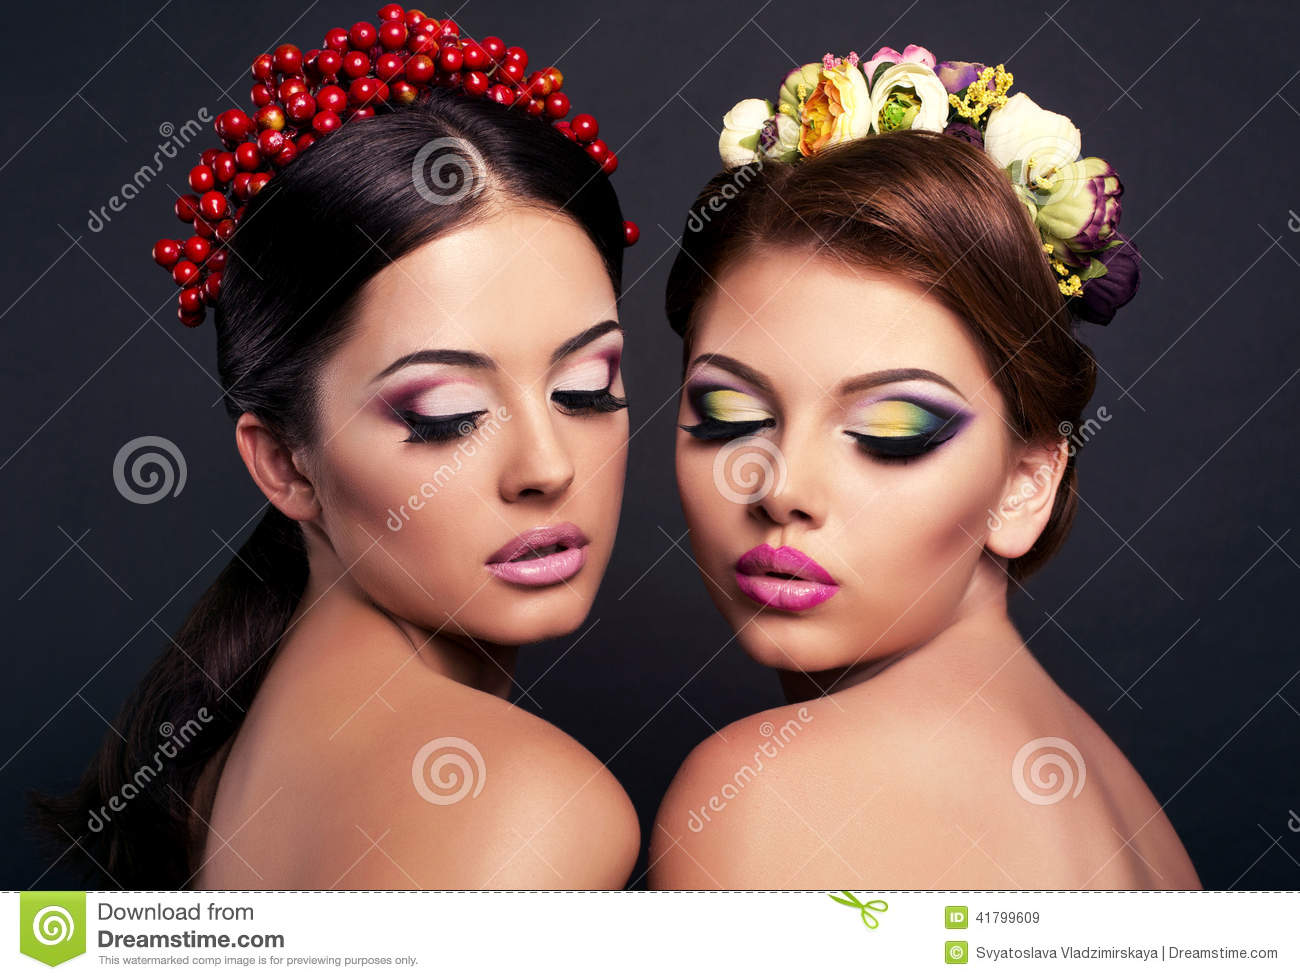 Fashion photo of two beautiful girls with bright makeup and flower s hair  accessories 285868cbea3